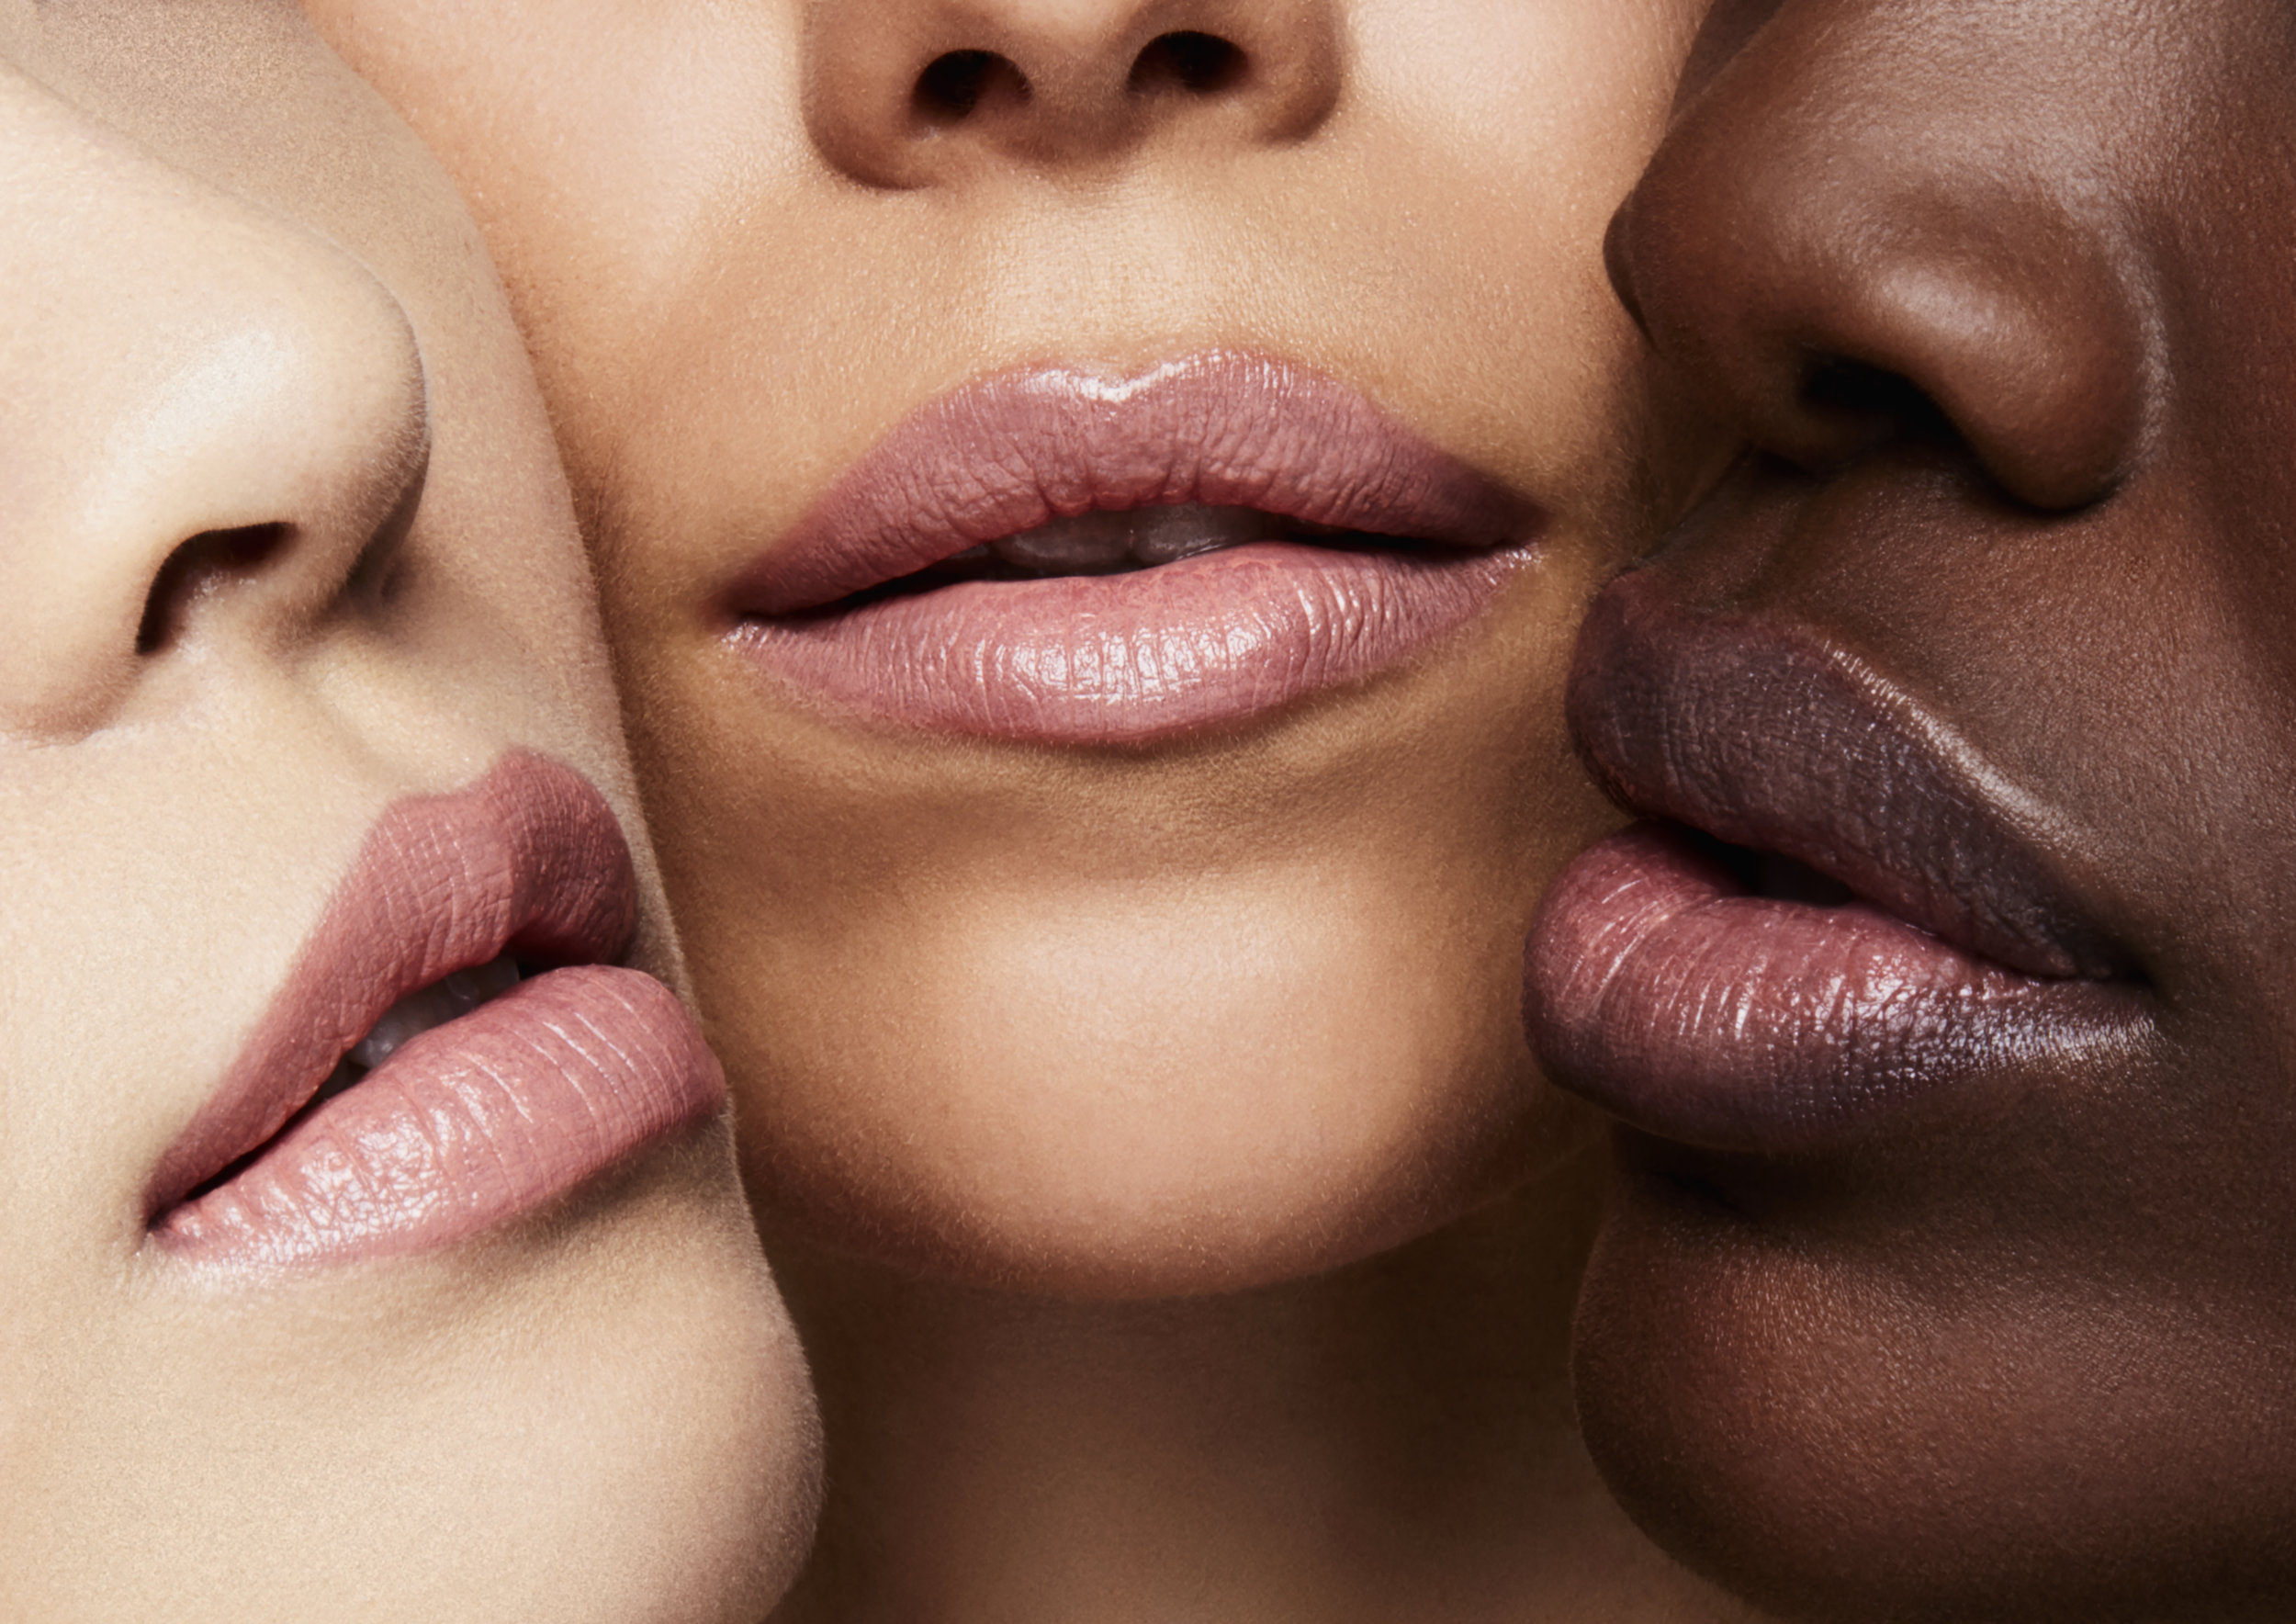 BeautyPhotography_TomFordBeauty_LipstickEditorial_By_BriJohnson_0008.jpg